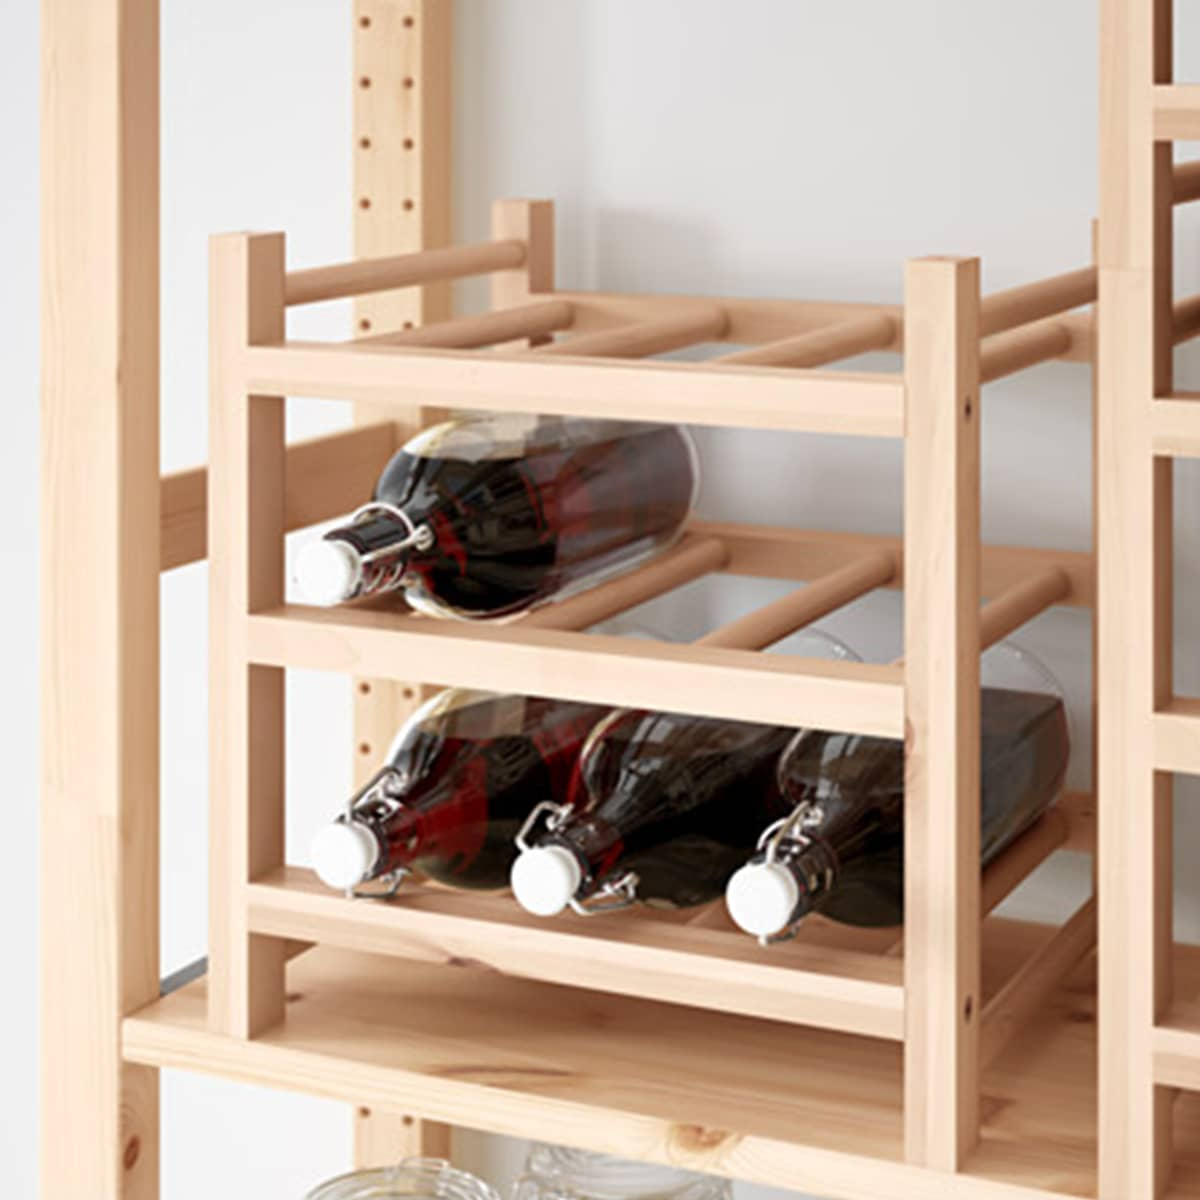 Beyond RASKOG: 8 Pantry-Organizing Products from IKEA For $10 or Less: gallery image 6